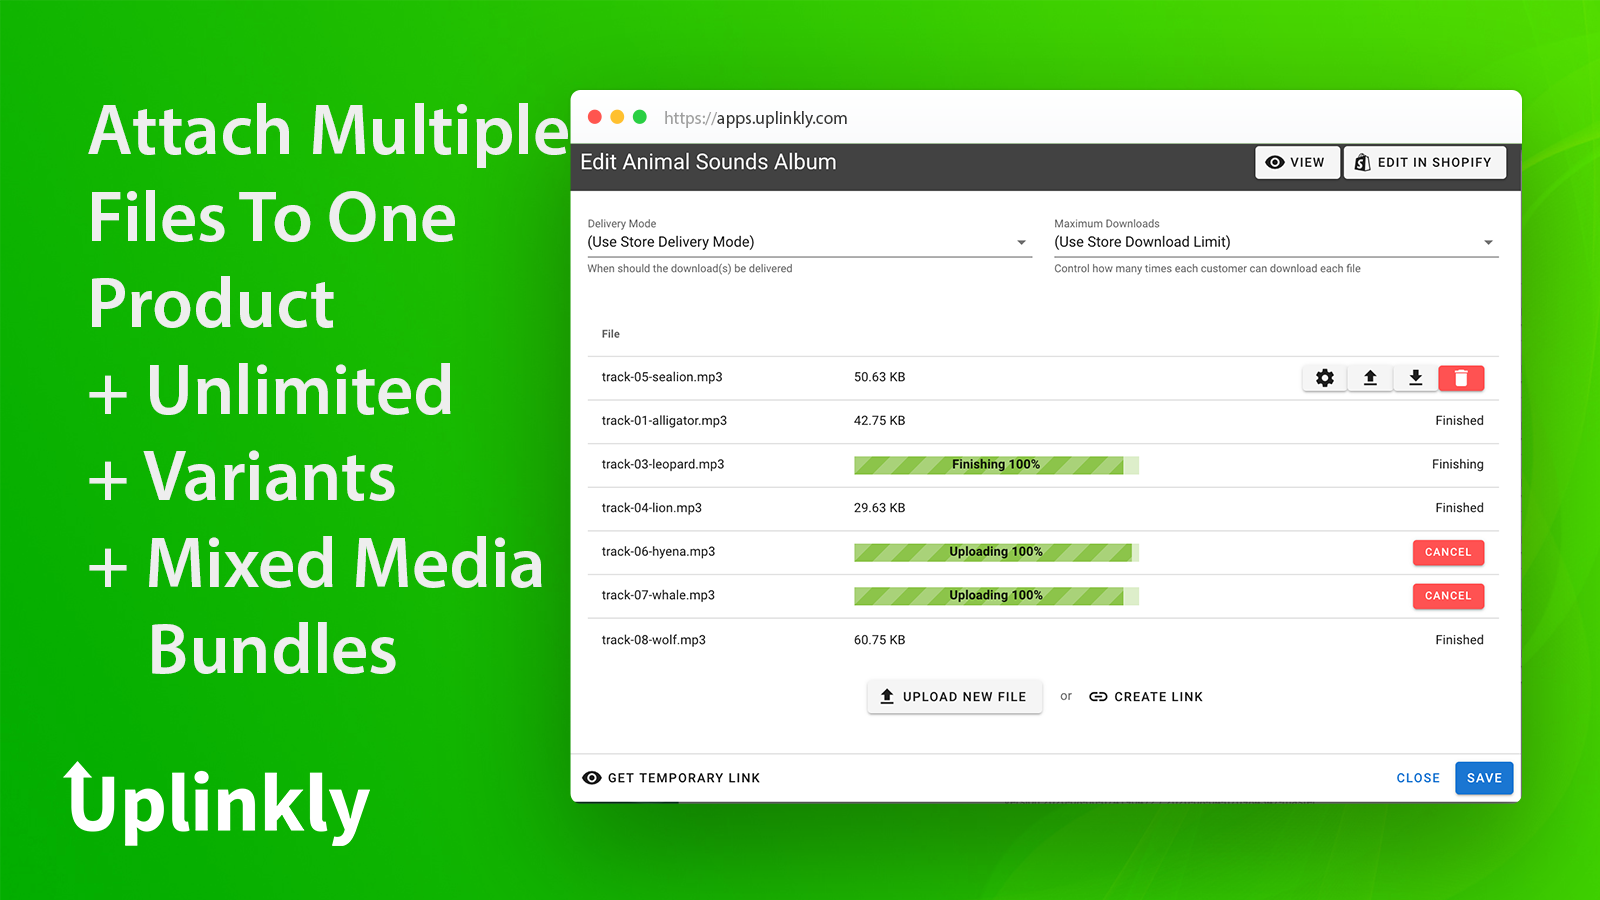 Add multiple files, physical & digital variants and mixed media